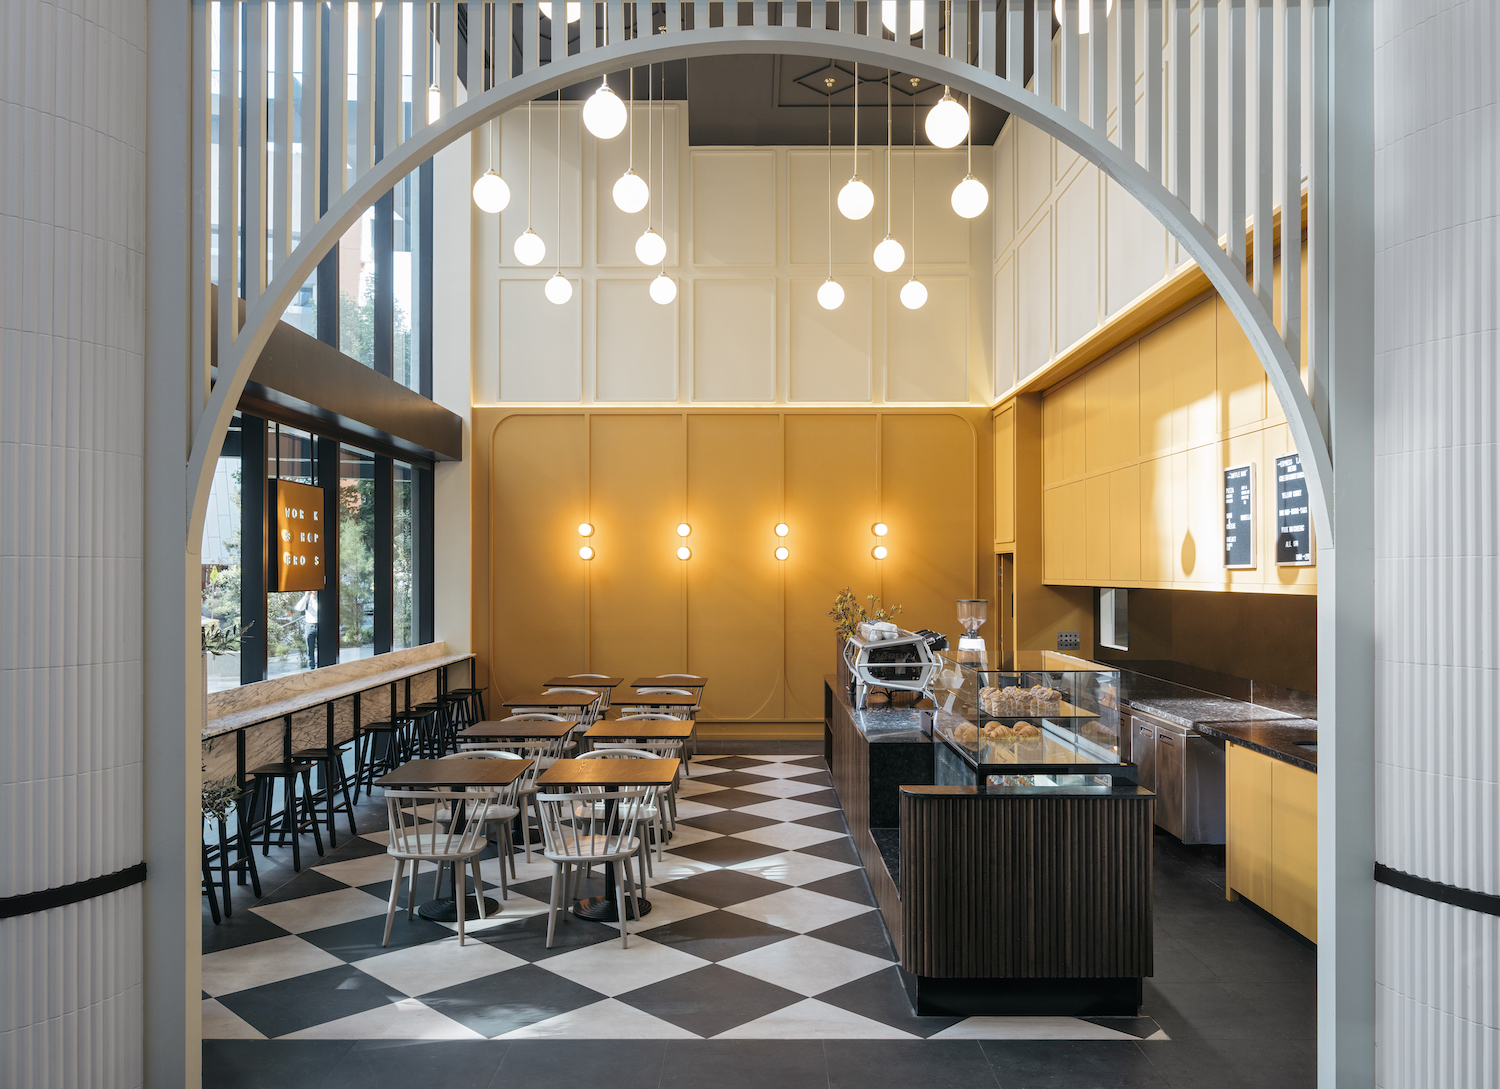 A cafe space with high ceilings and yellow wood panelling